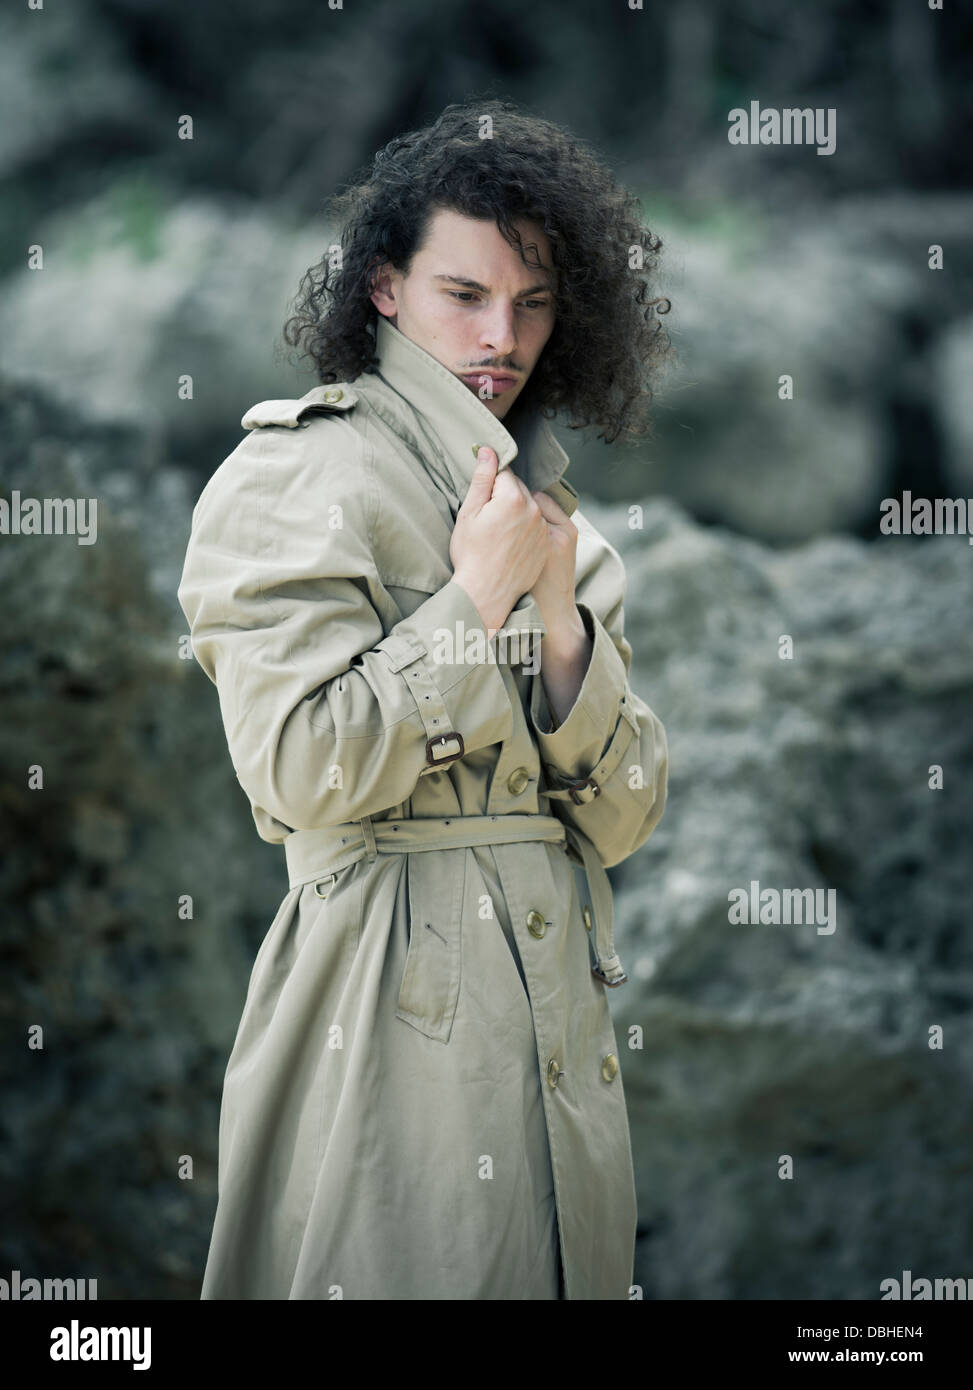 Man with long wavy hair beard and mustache wearing Burberry trench coat  raincoat - Stock Image